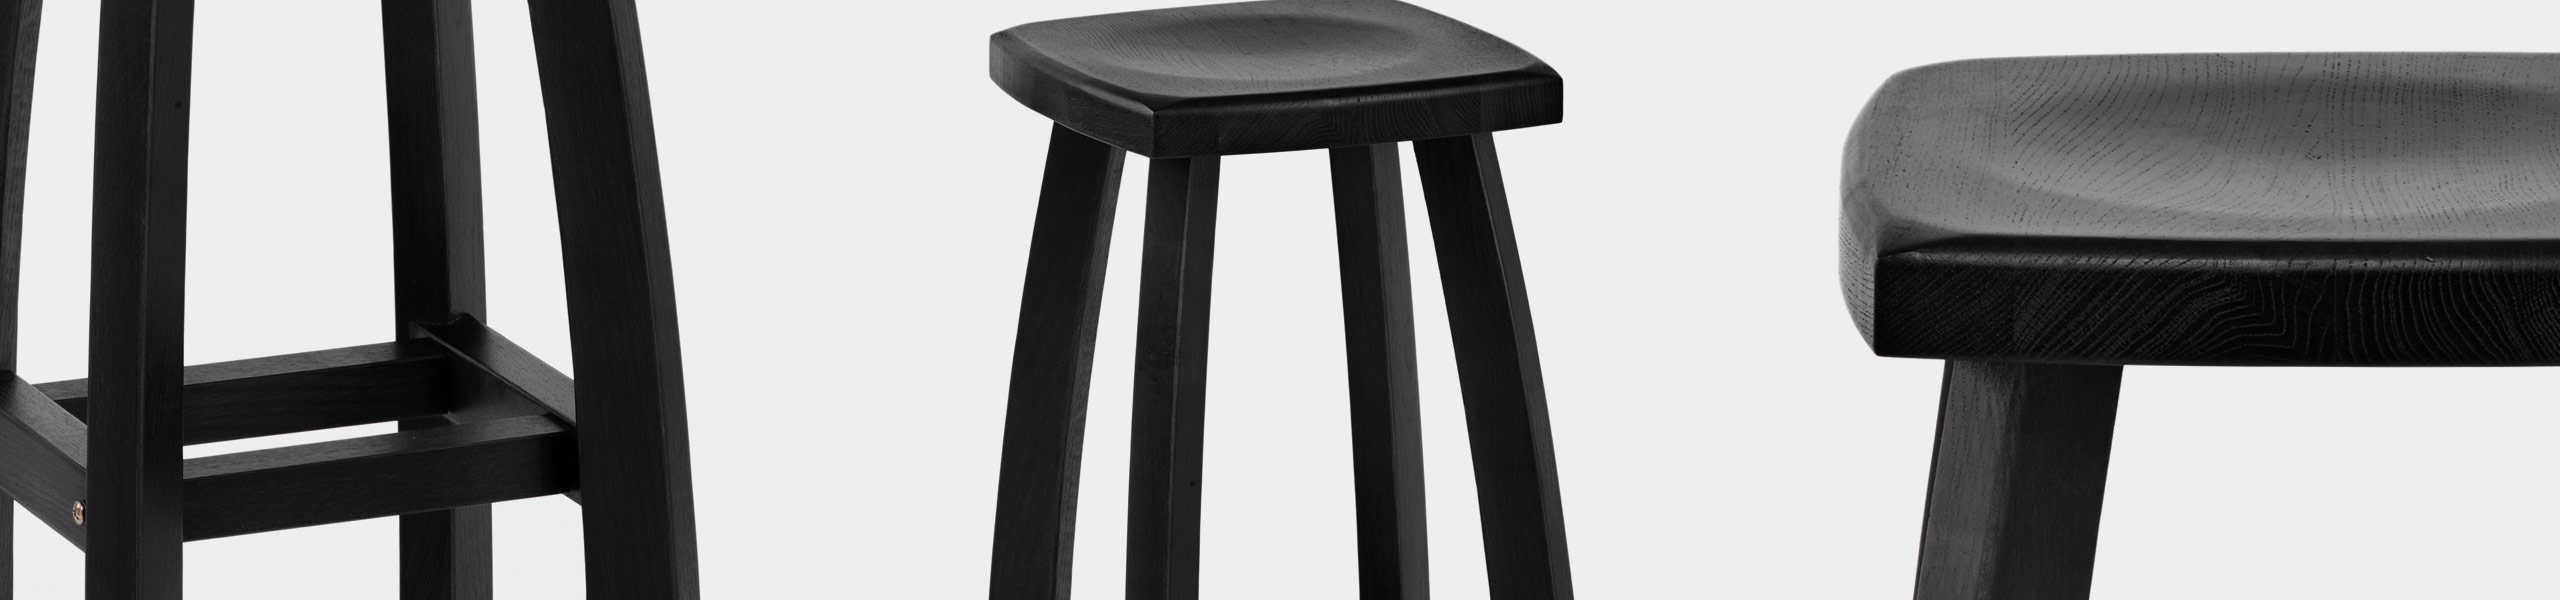 Oslo Bar Stool Black Video Banner